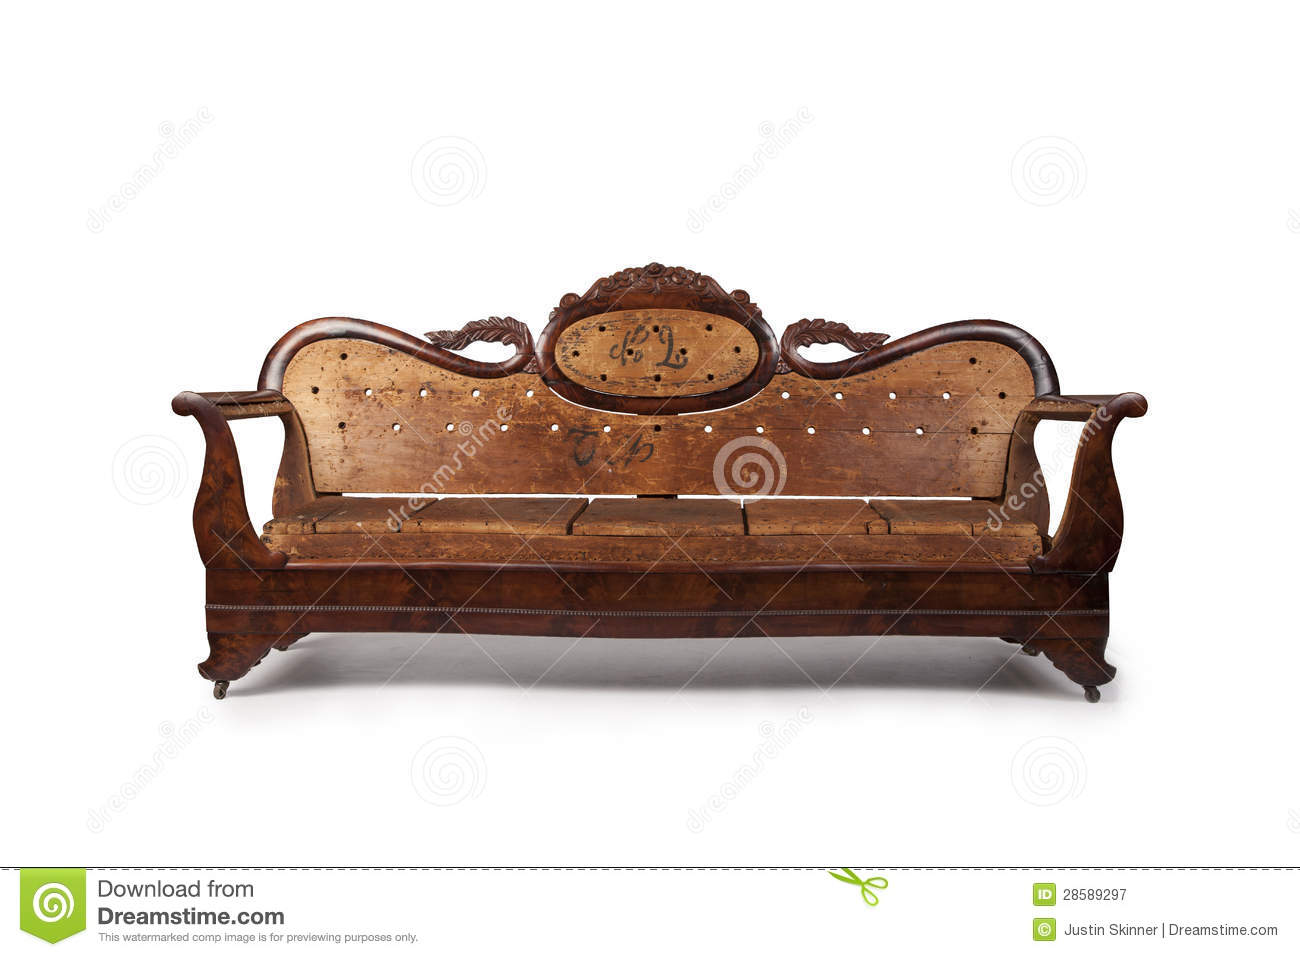 Wooden Couch Antique Wooden Couch Royalty Free Stock Photography  Image 28589297